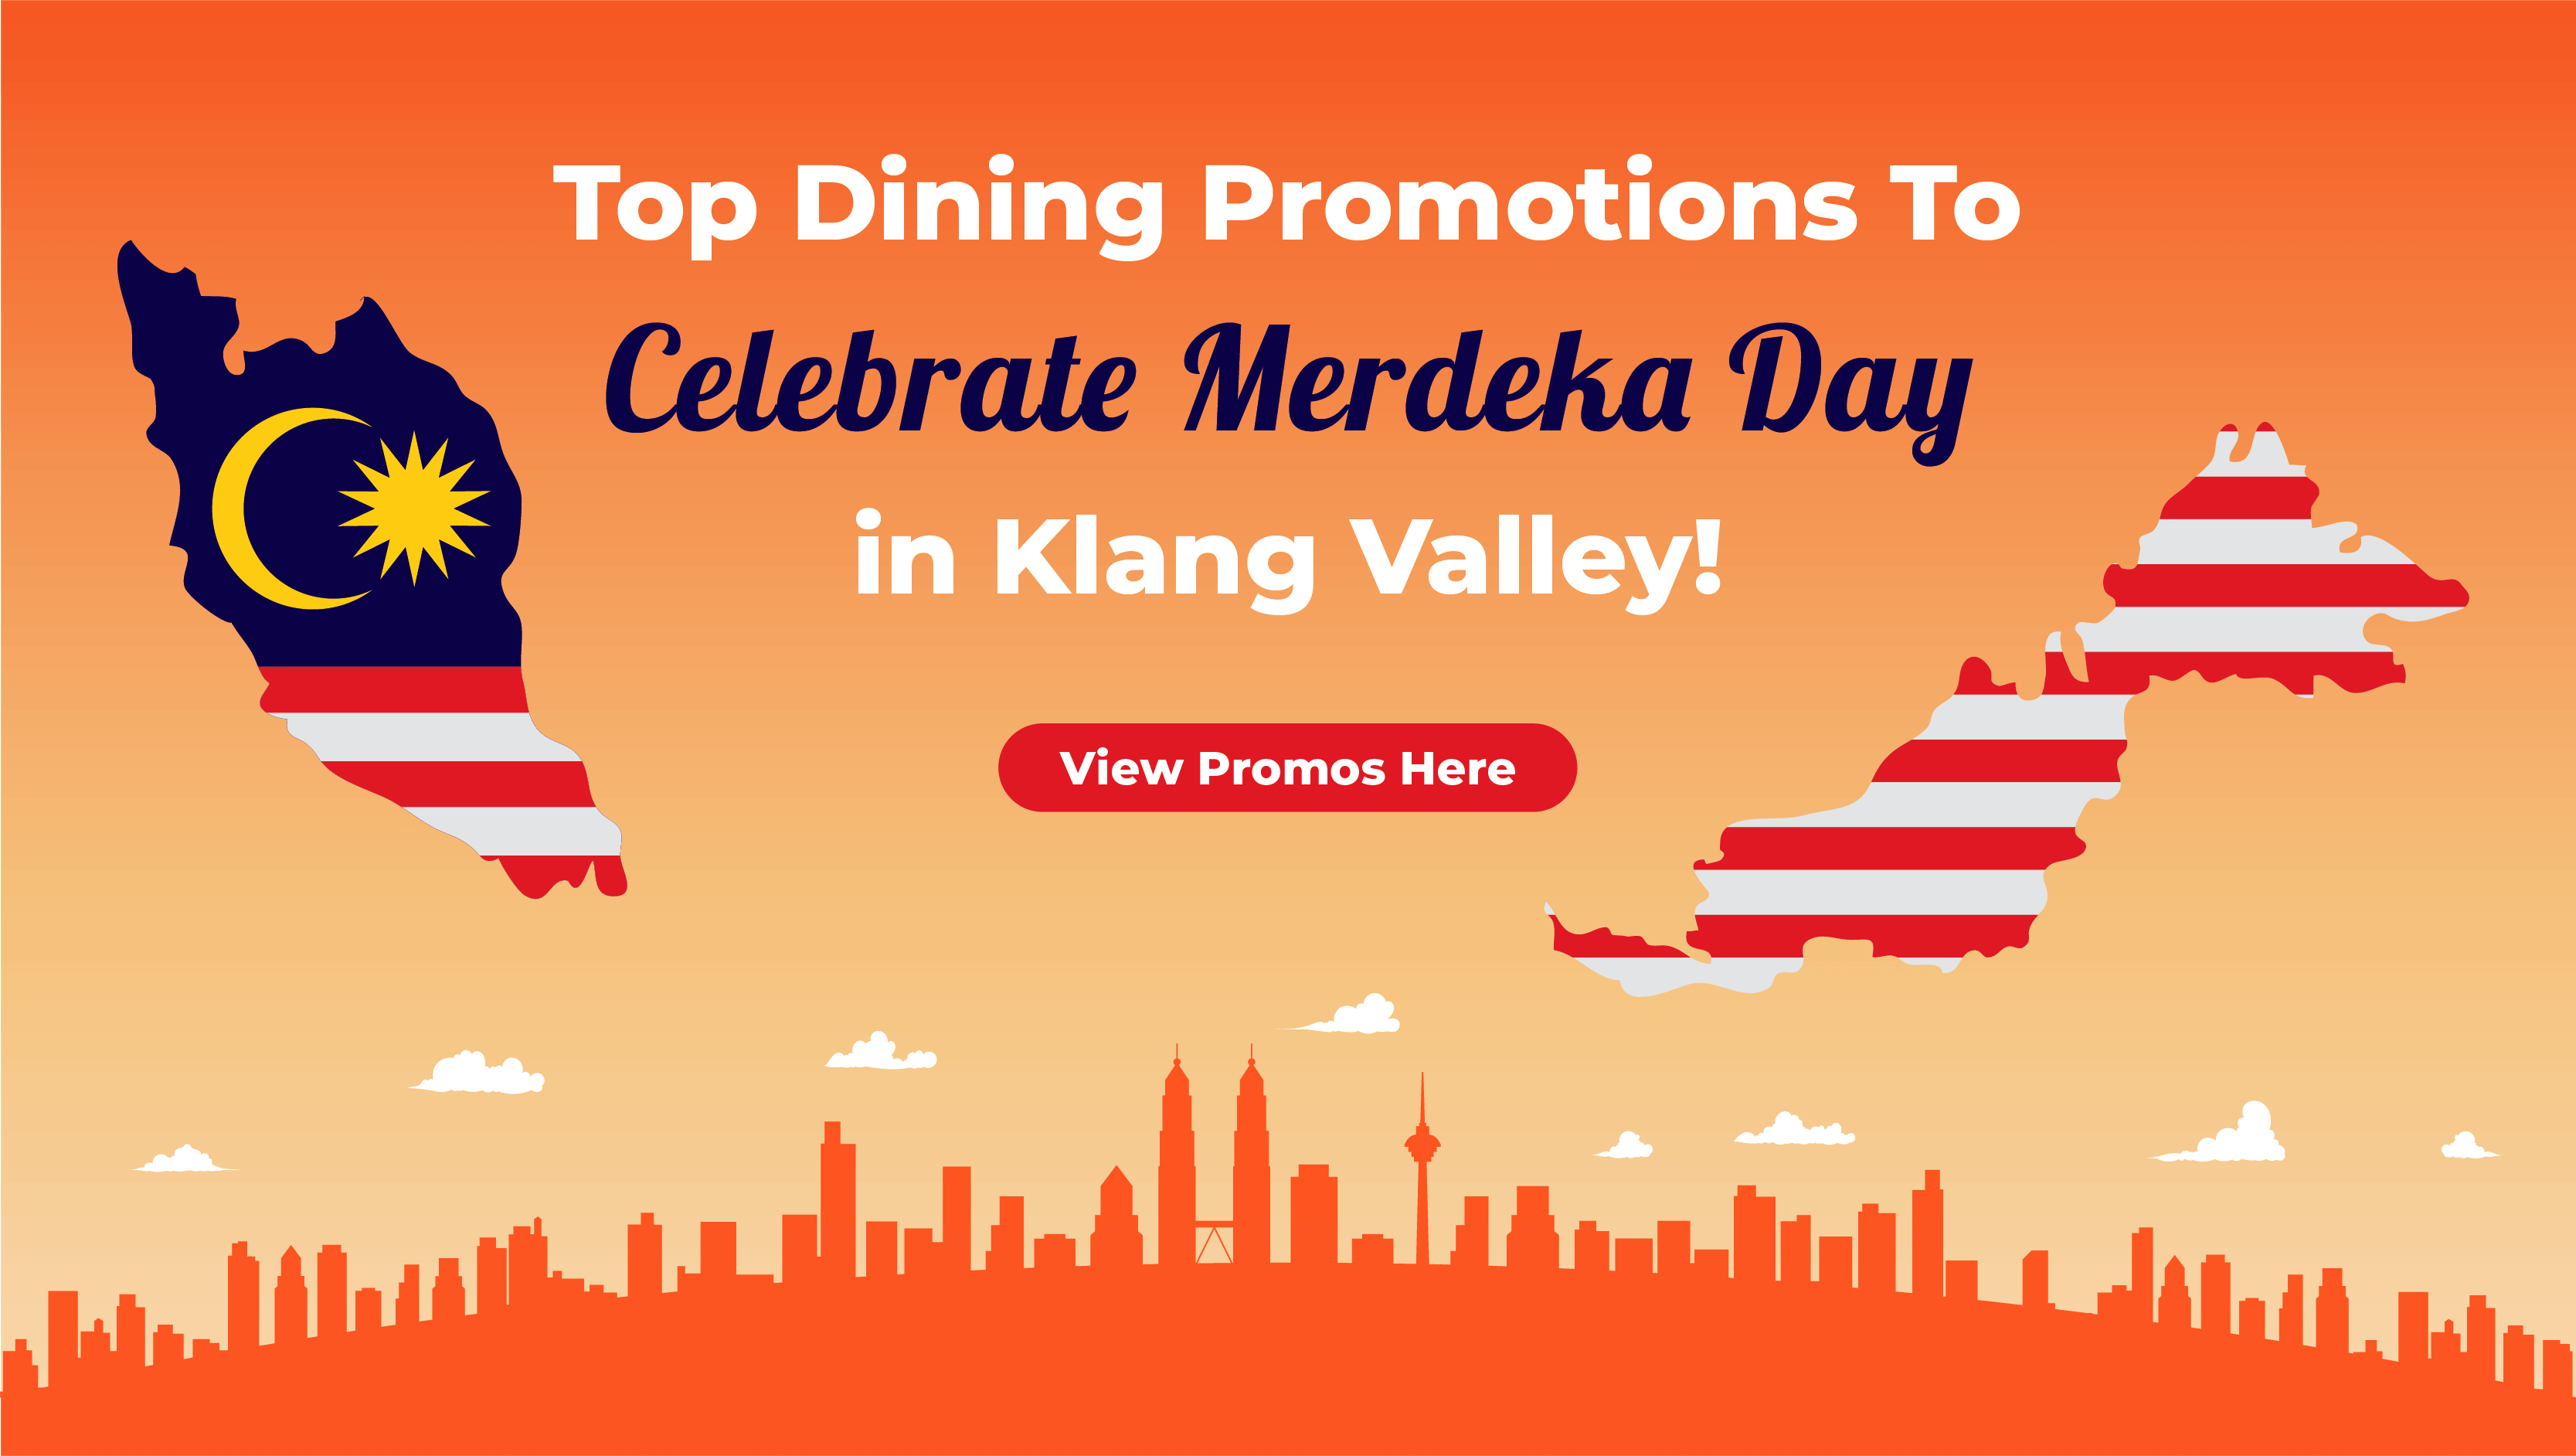 View Top Dining Promotions To Celebrate Merdeka Day in Klang Valley